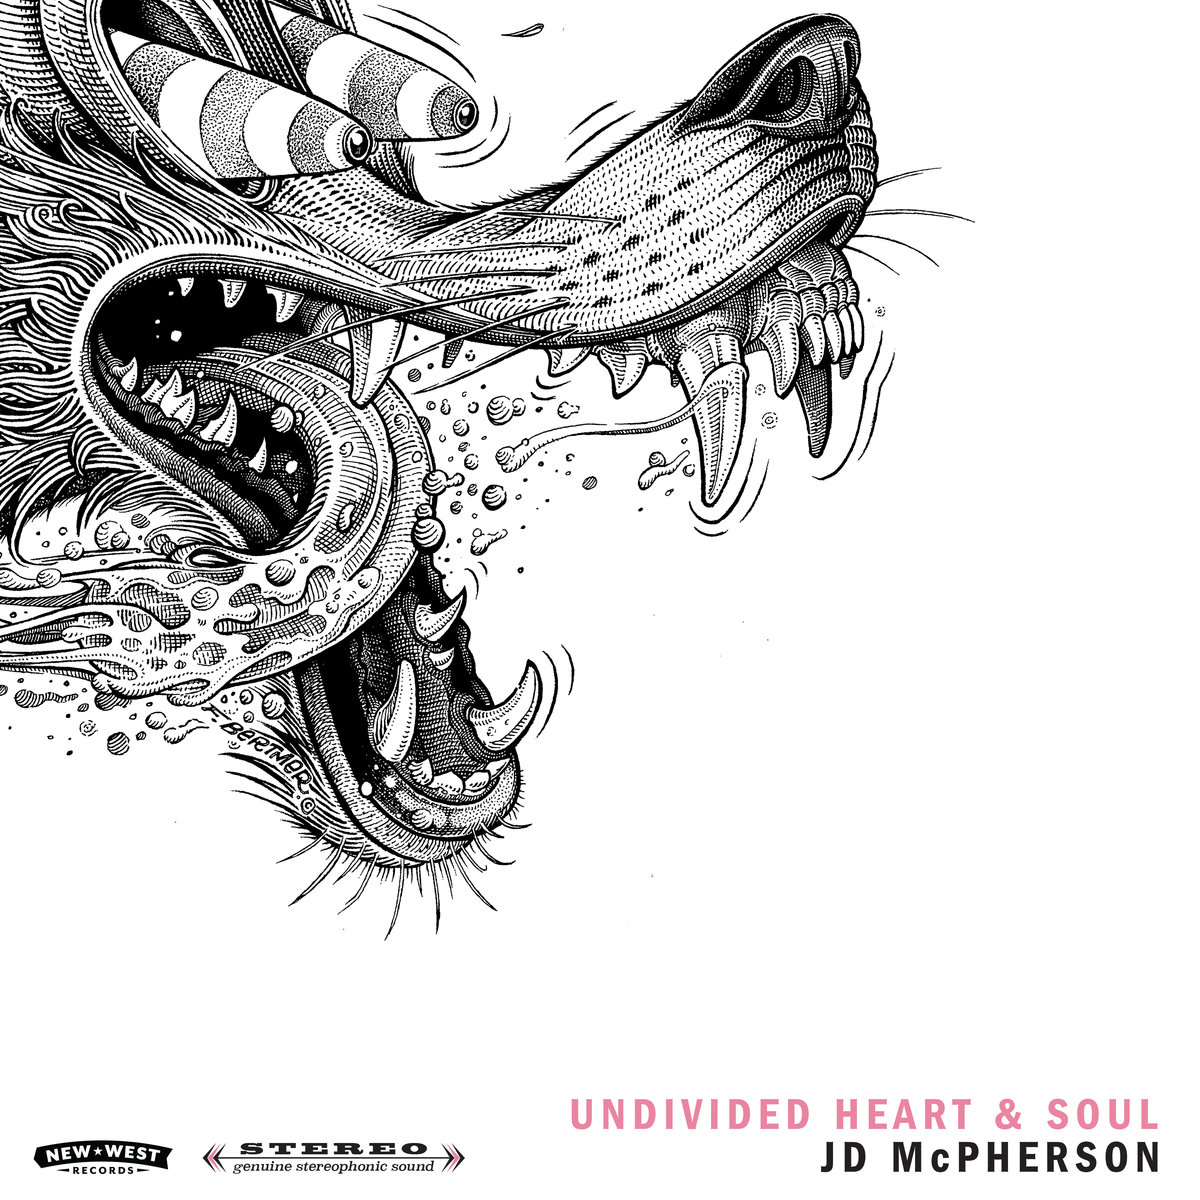 JD MCPHERSON   Undivided Heart & Soul, 2017, Dan Molad, 37:00